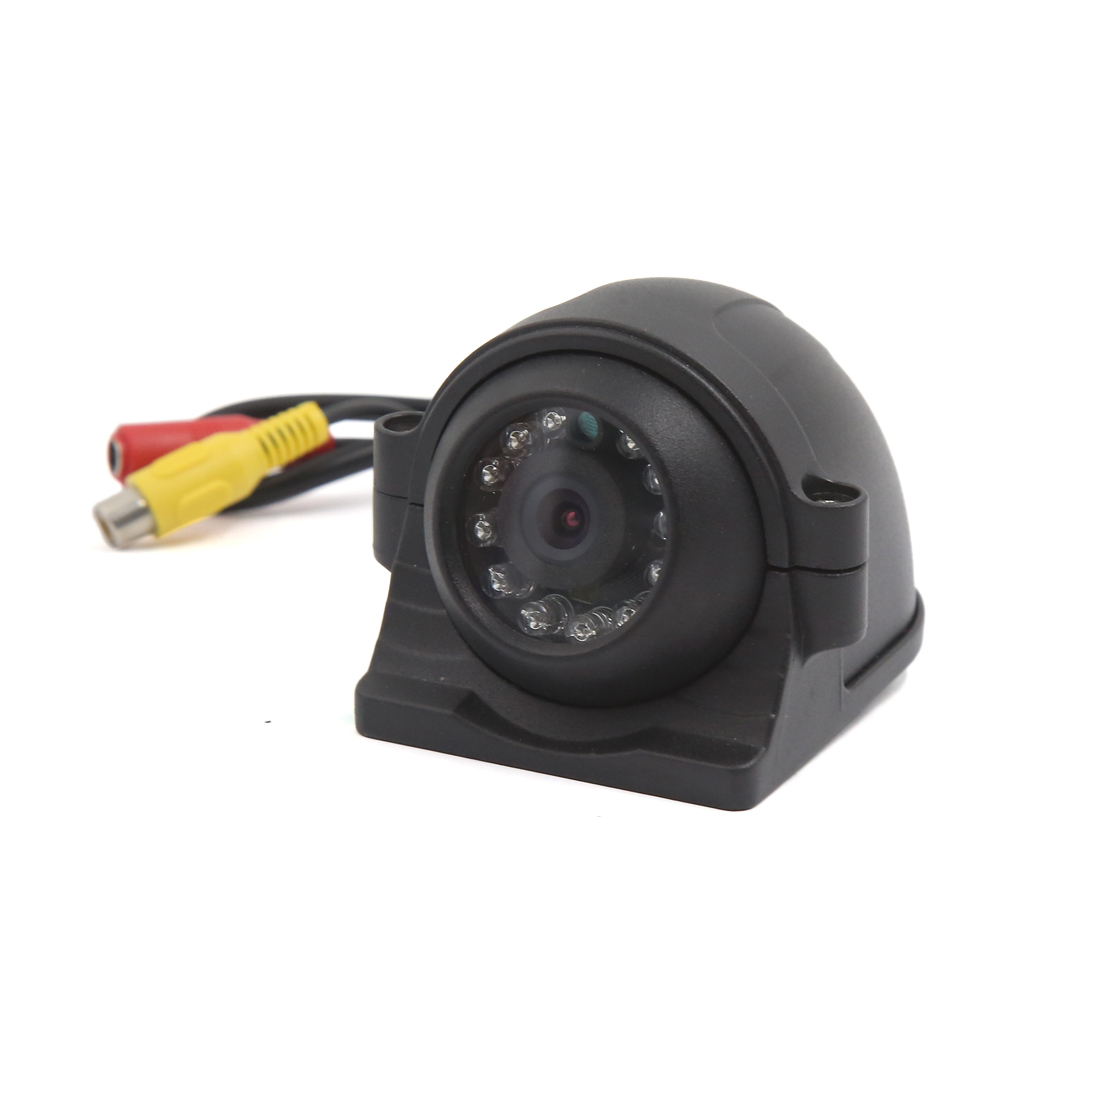 480TVL Reverse Backup Parking Night Vision 170 Degree Car Rear View Camera